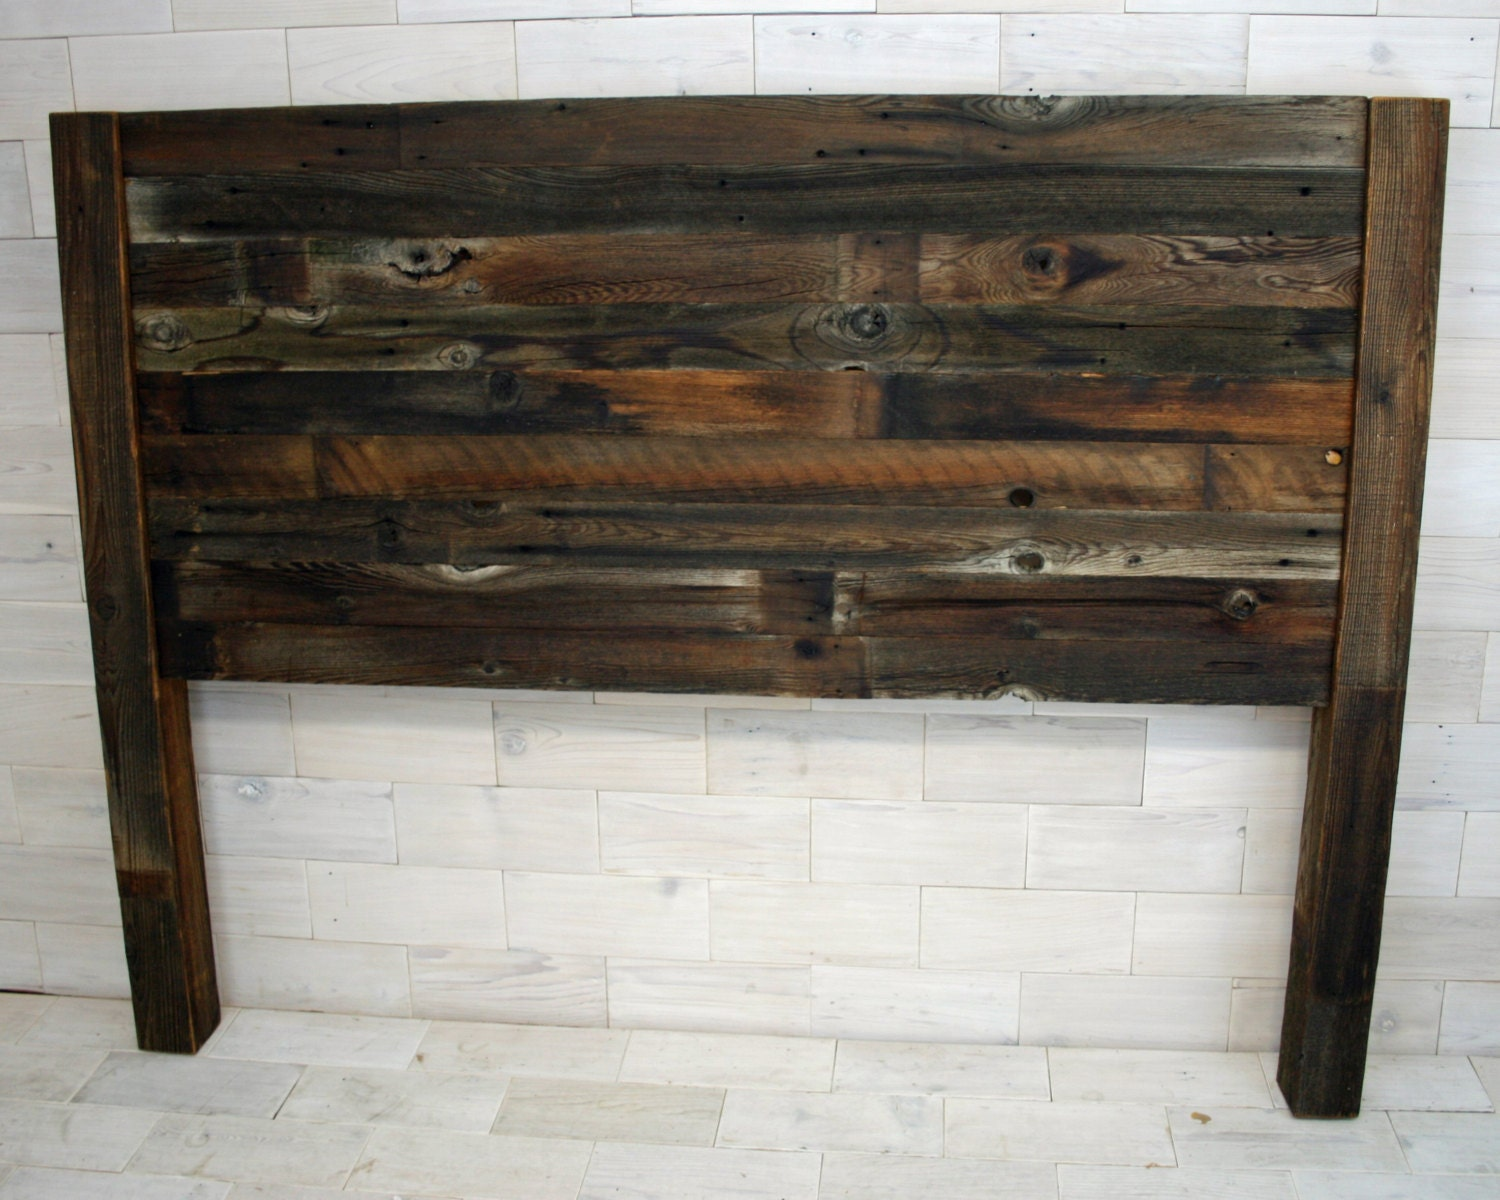 Recumbent Queen Headboard Made From Barn Wood